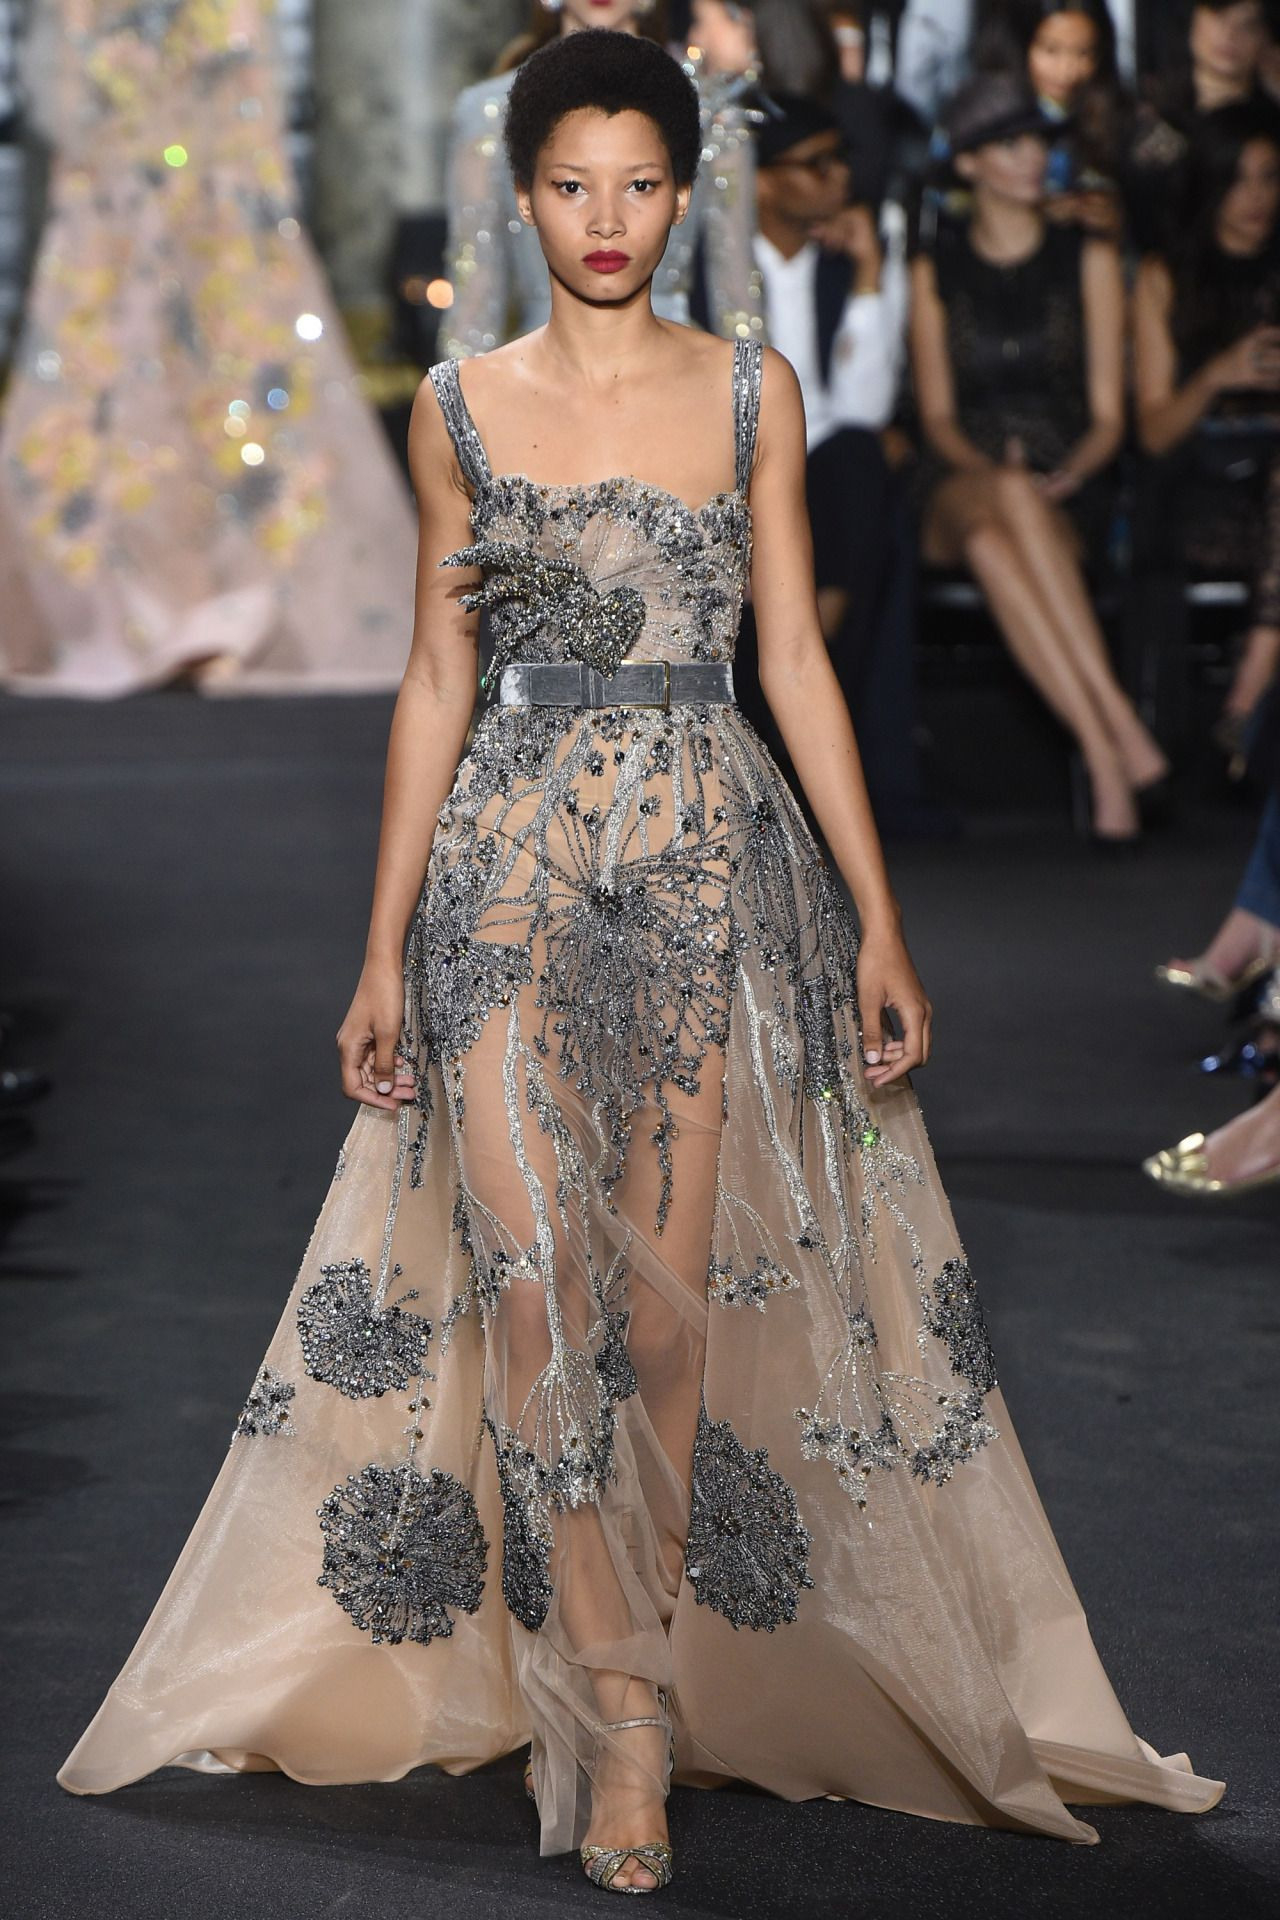 Elie Saab  Haute Couture  Fall 2016 Model  Welcome